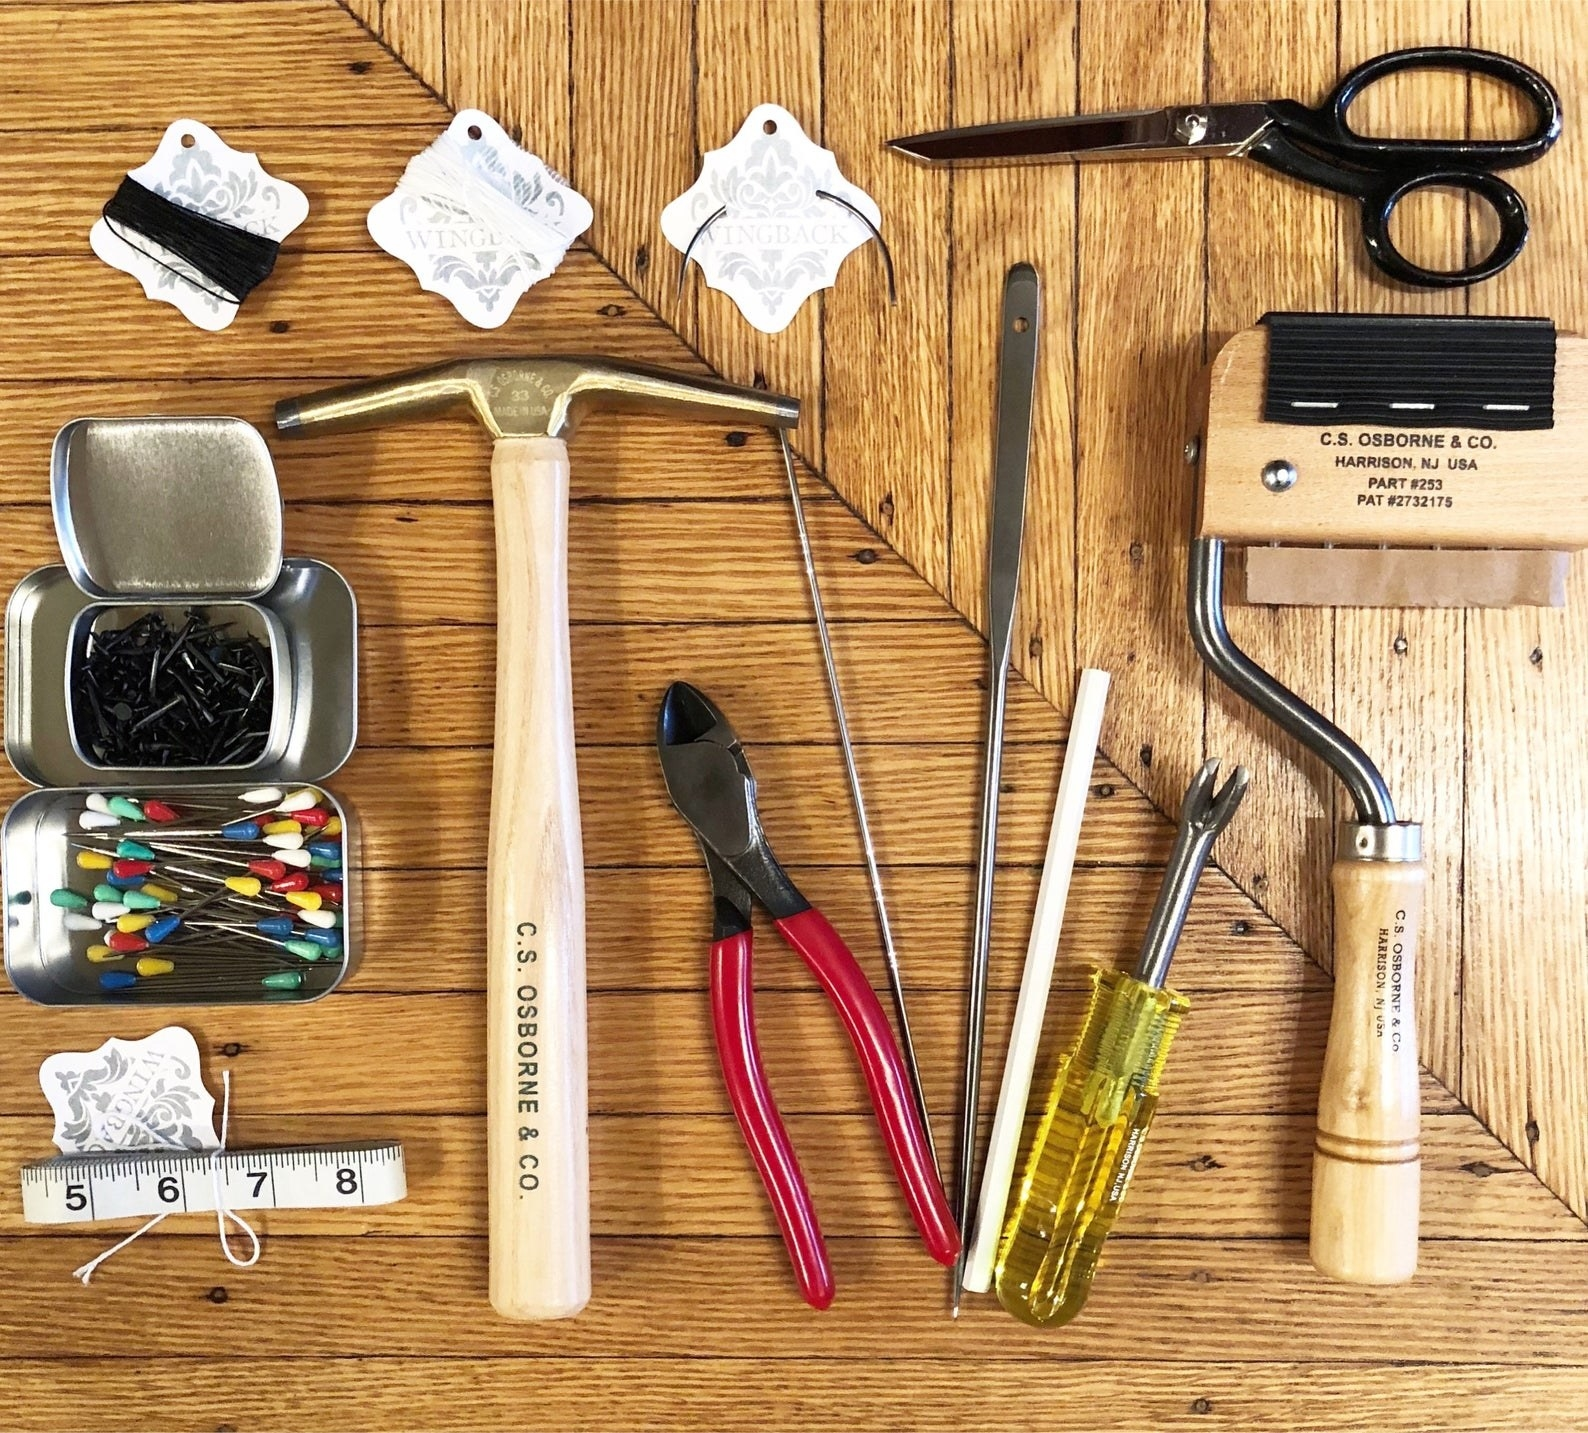 the complete furniture repair upholstery kit laid out on a wooden table